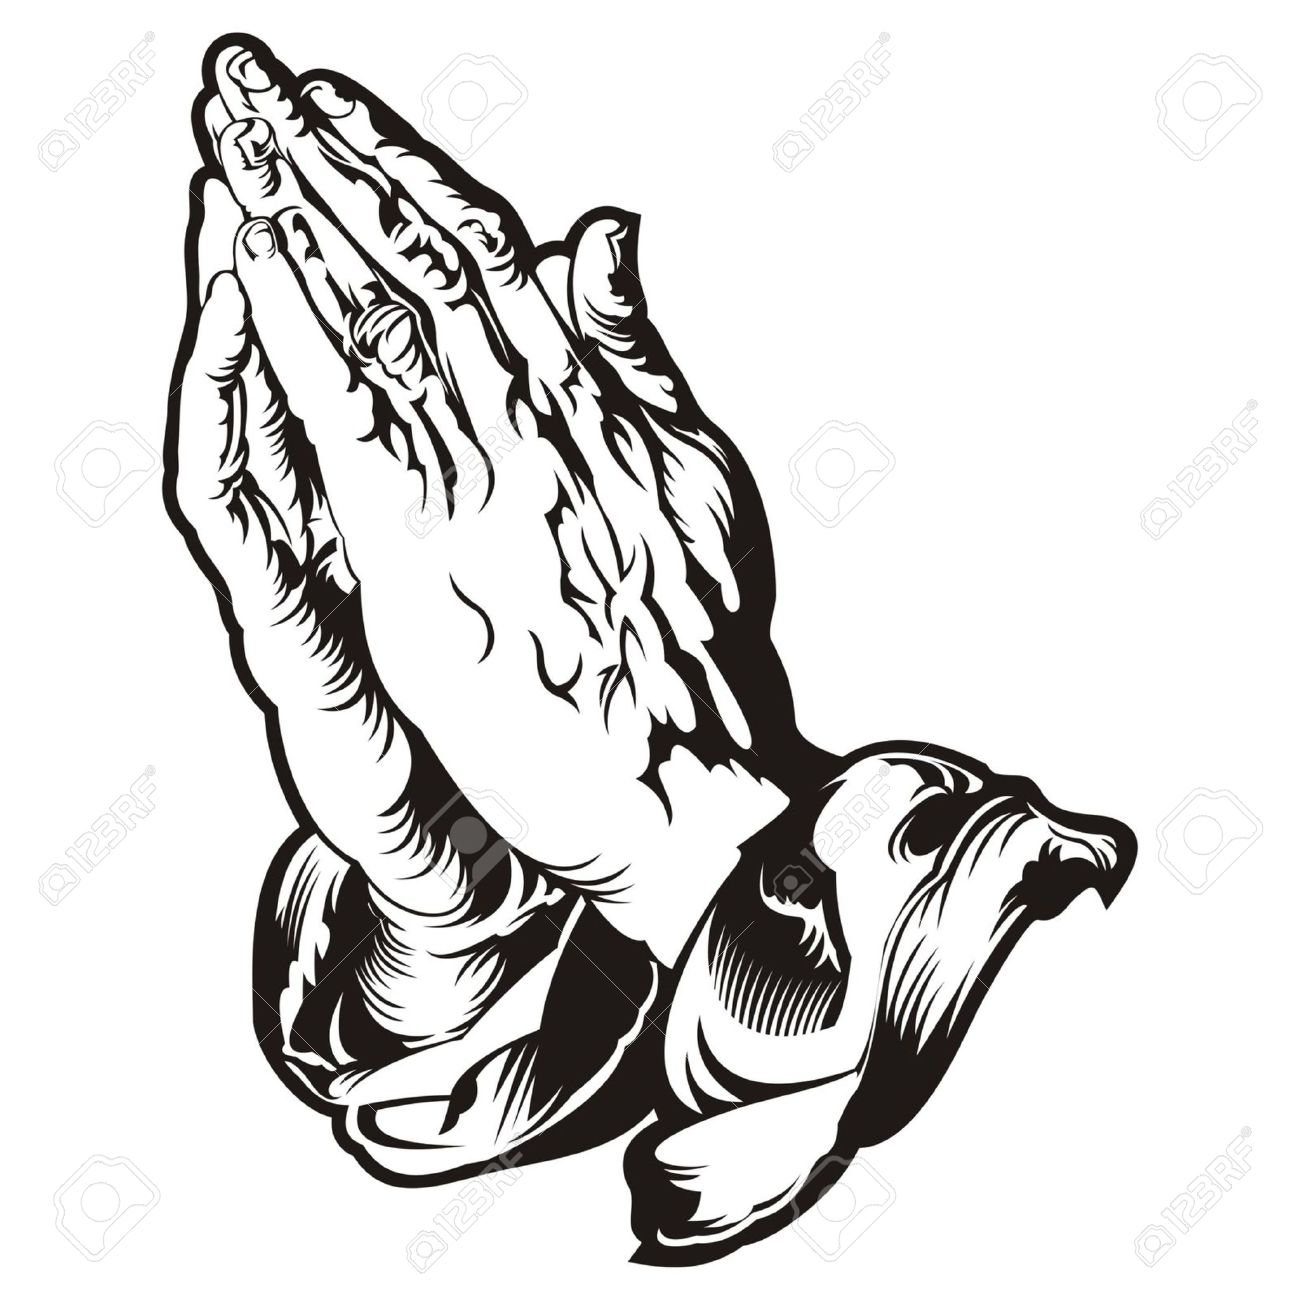 1744 Praying Hands free clipart.